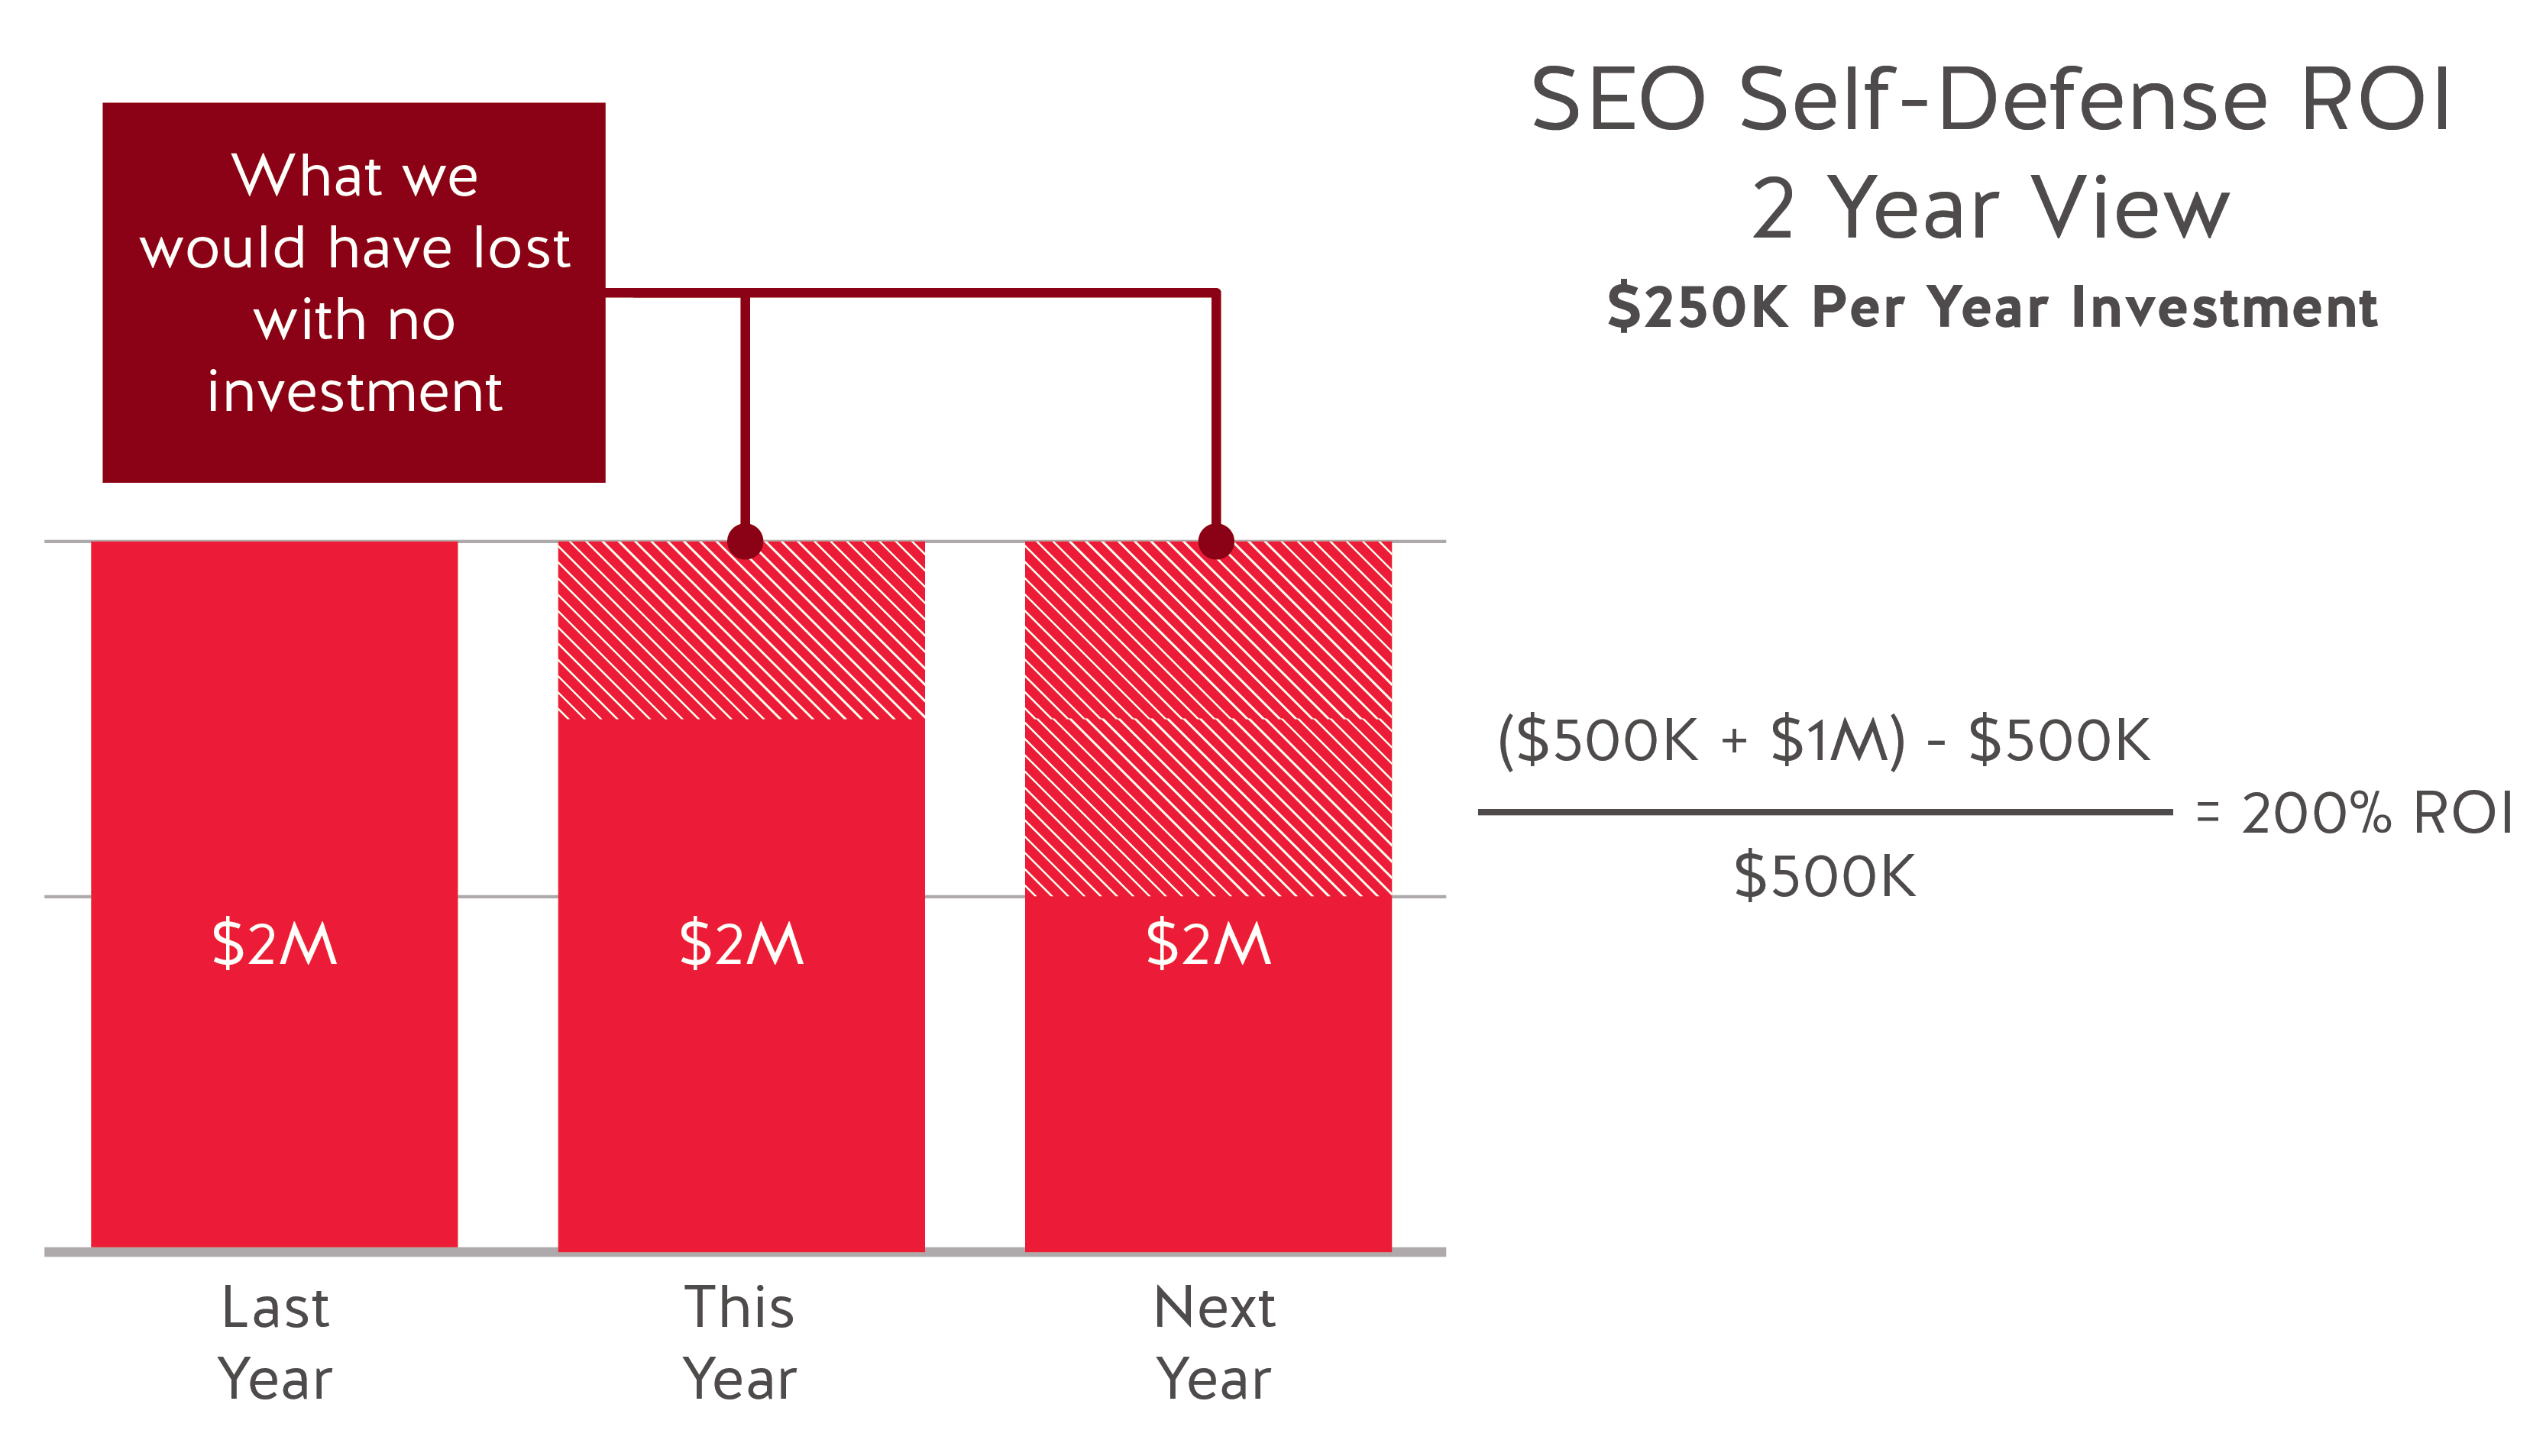 SEO self defense ROI 2 year view